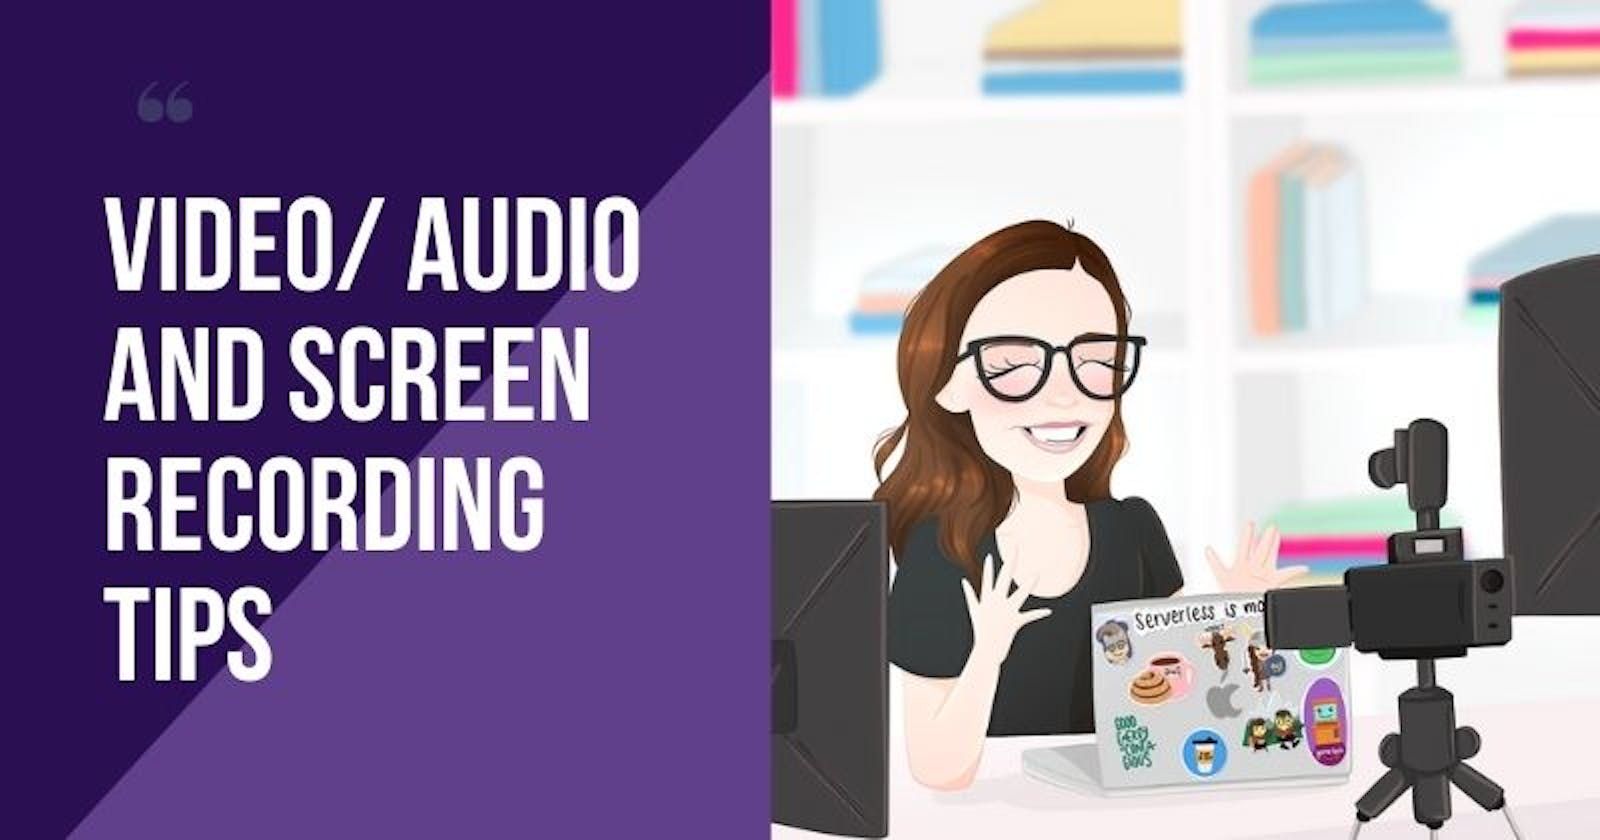 Tips to improve Audio, Video and Screen share for your presentations